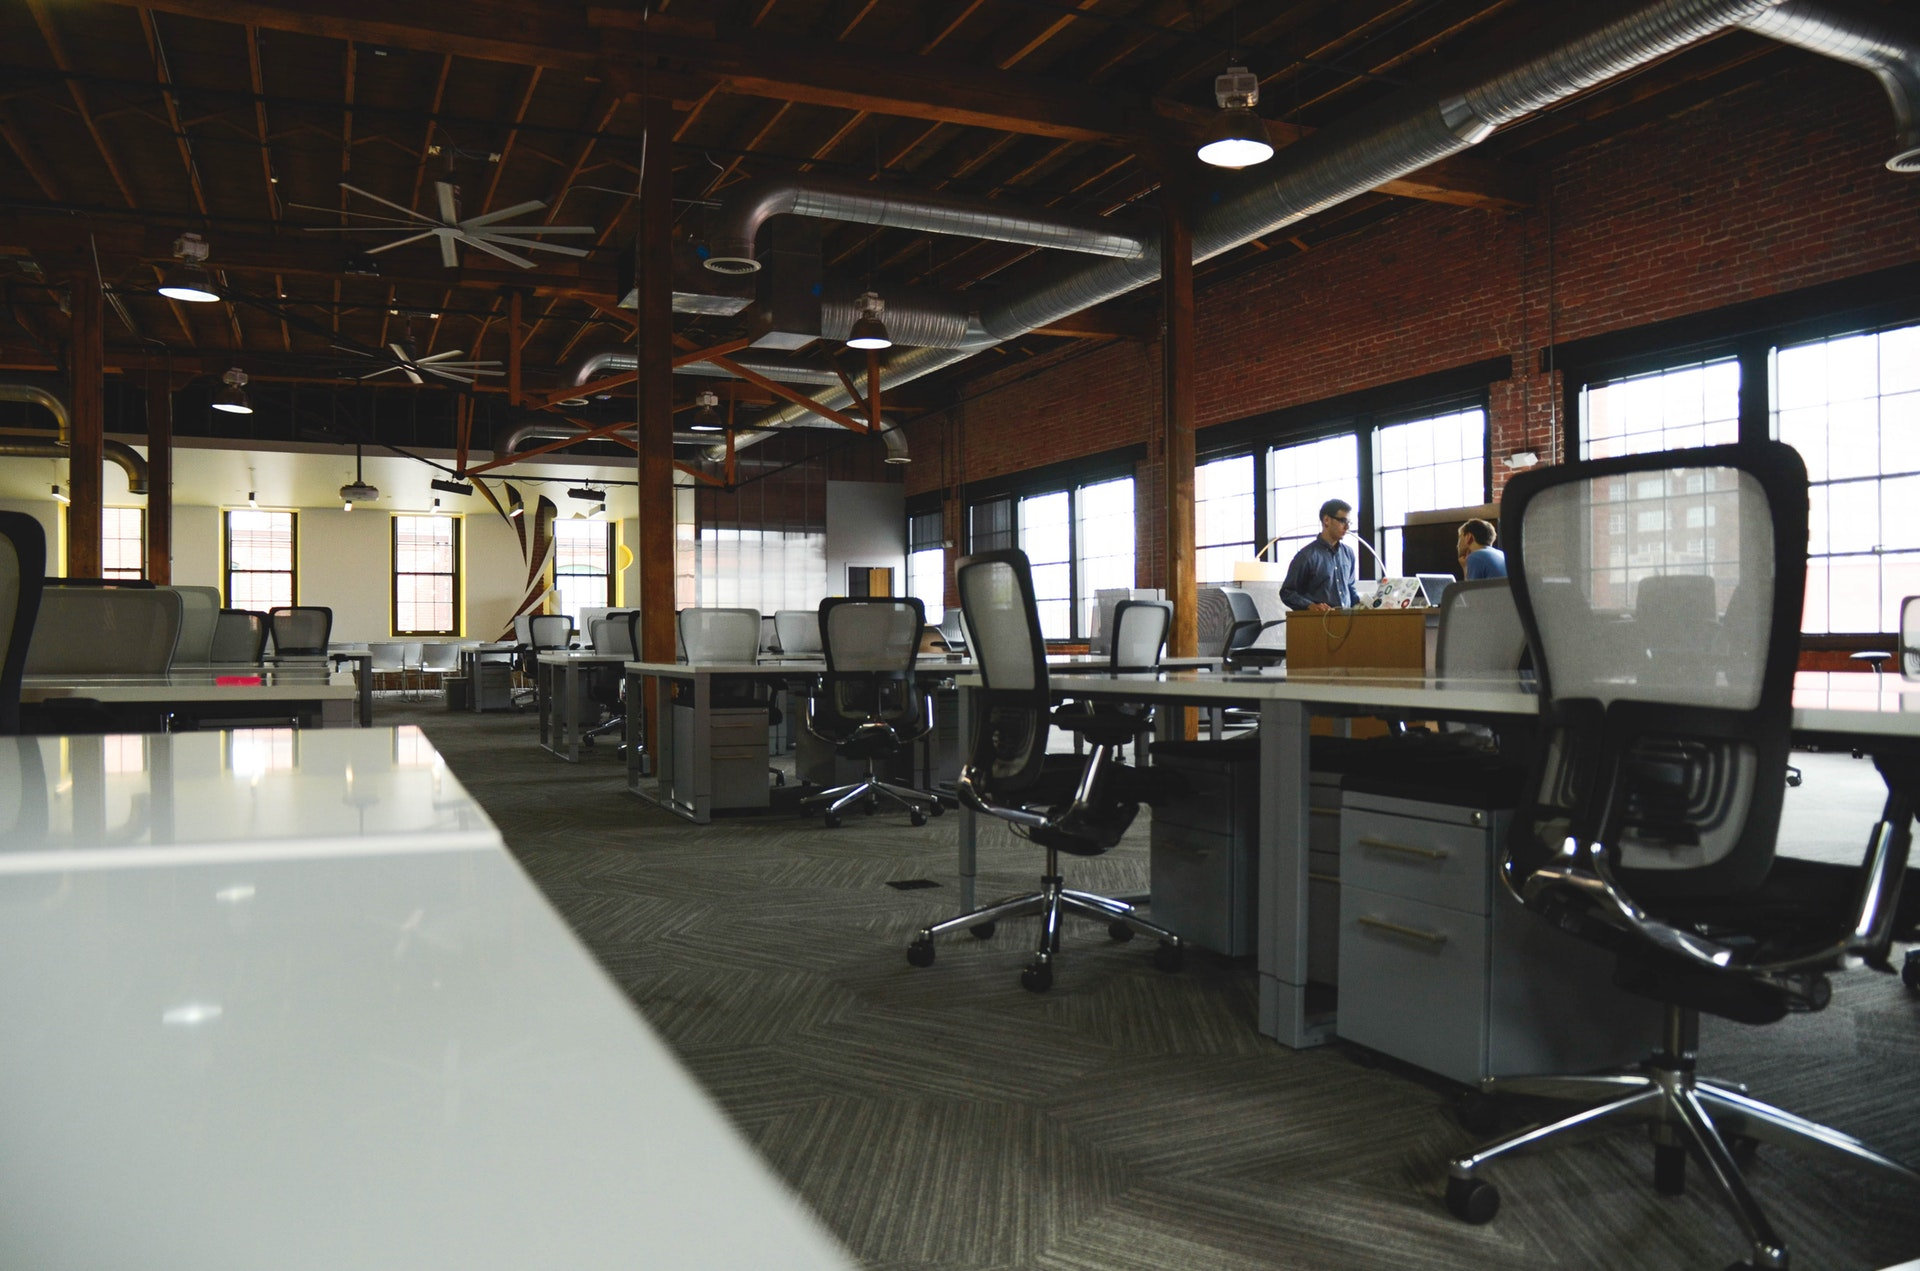 Open room full of workstations; image by Startup Stock Photos, via Pexels.com.